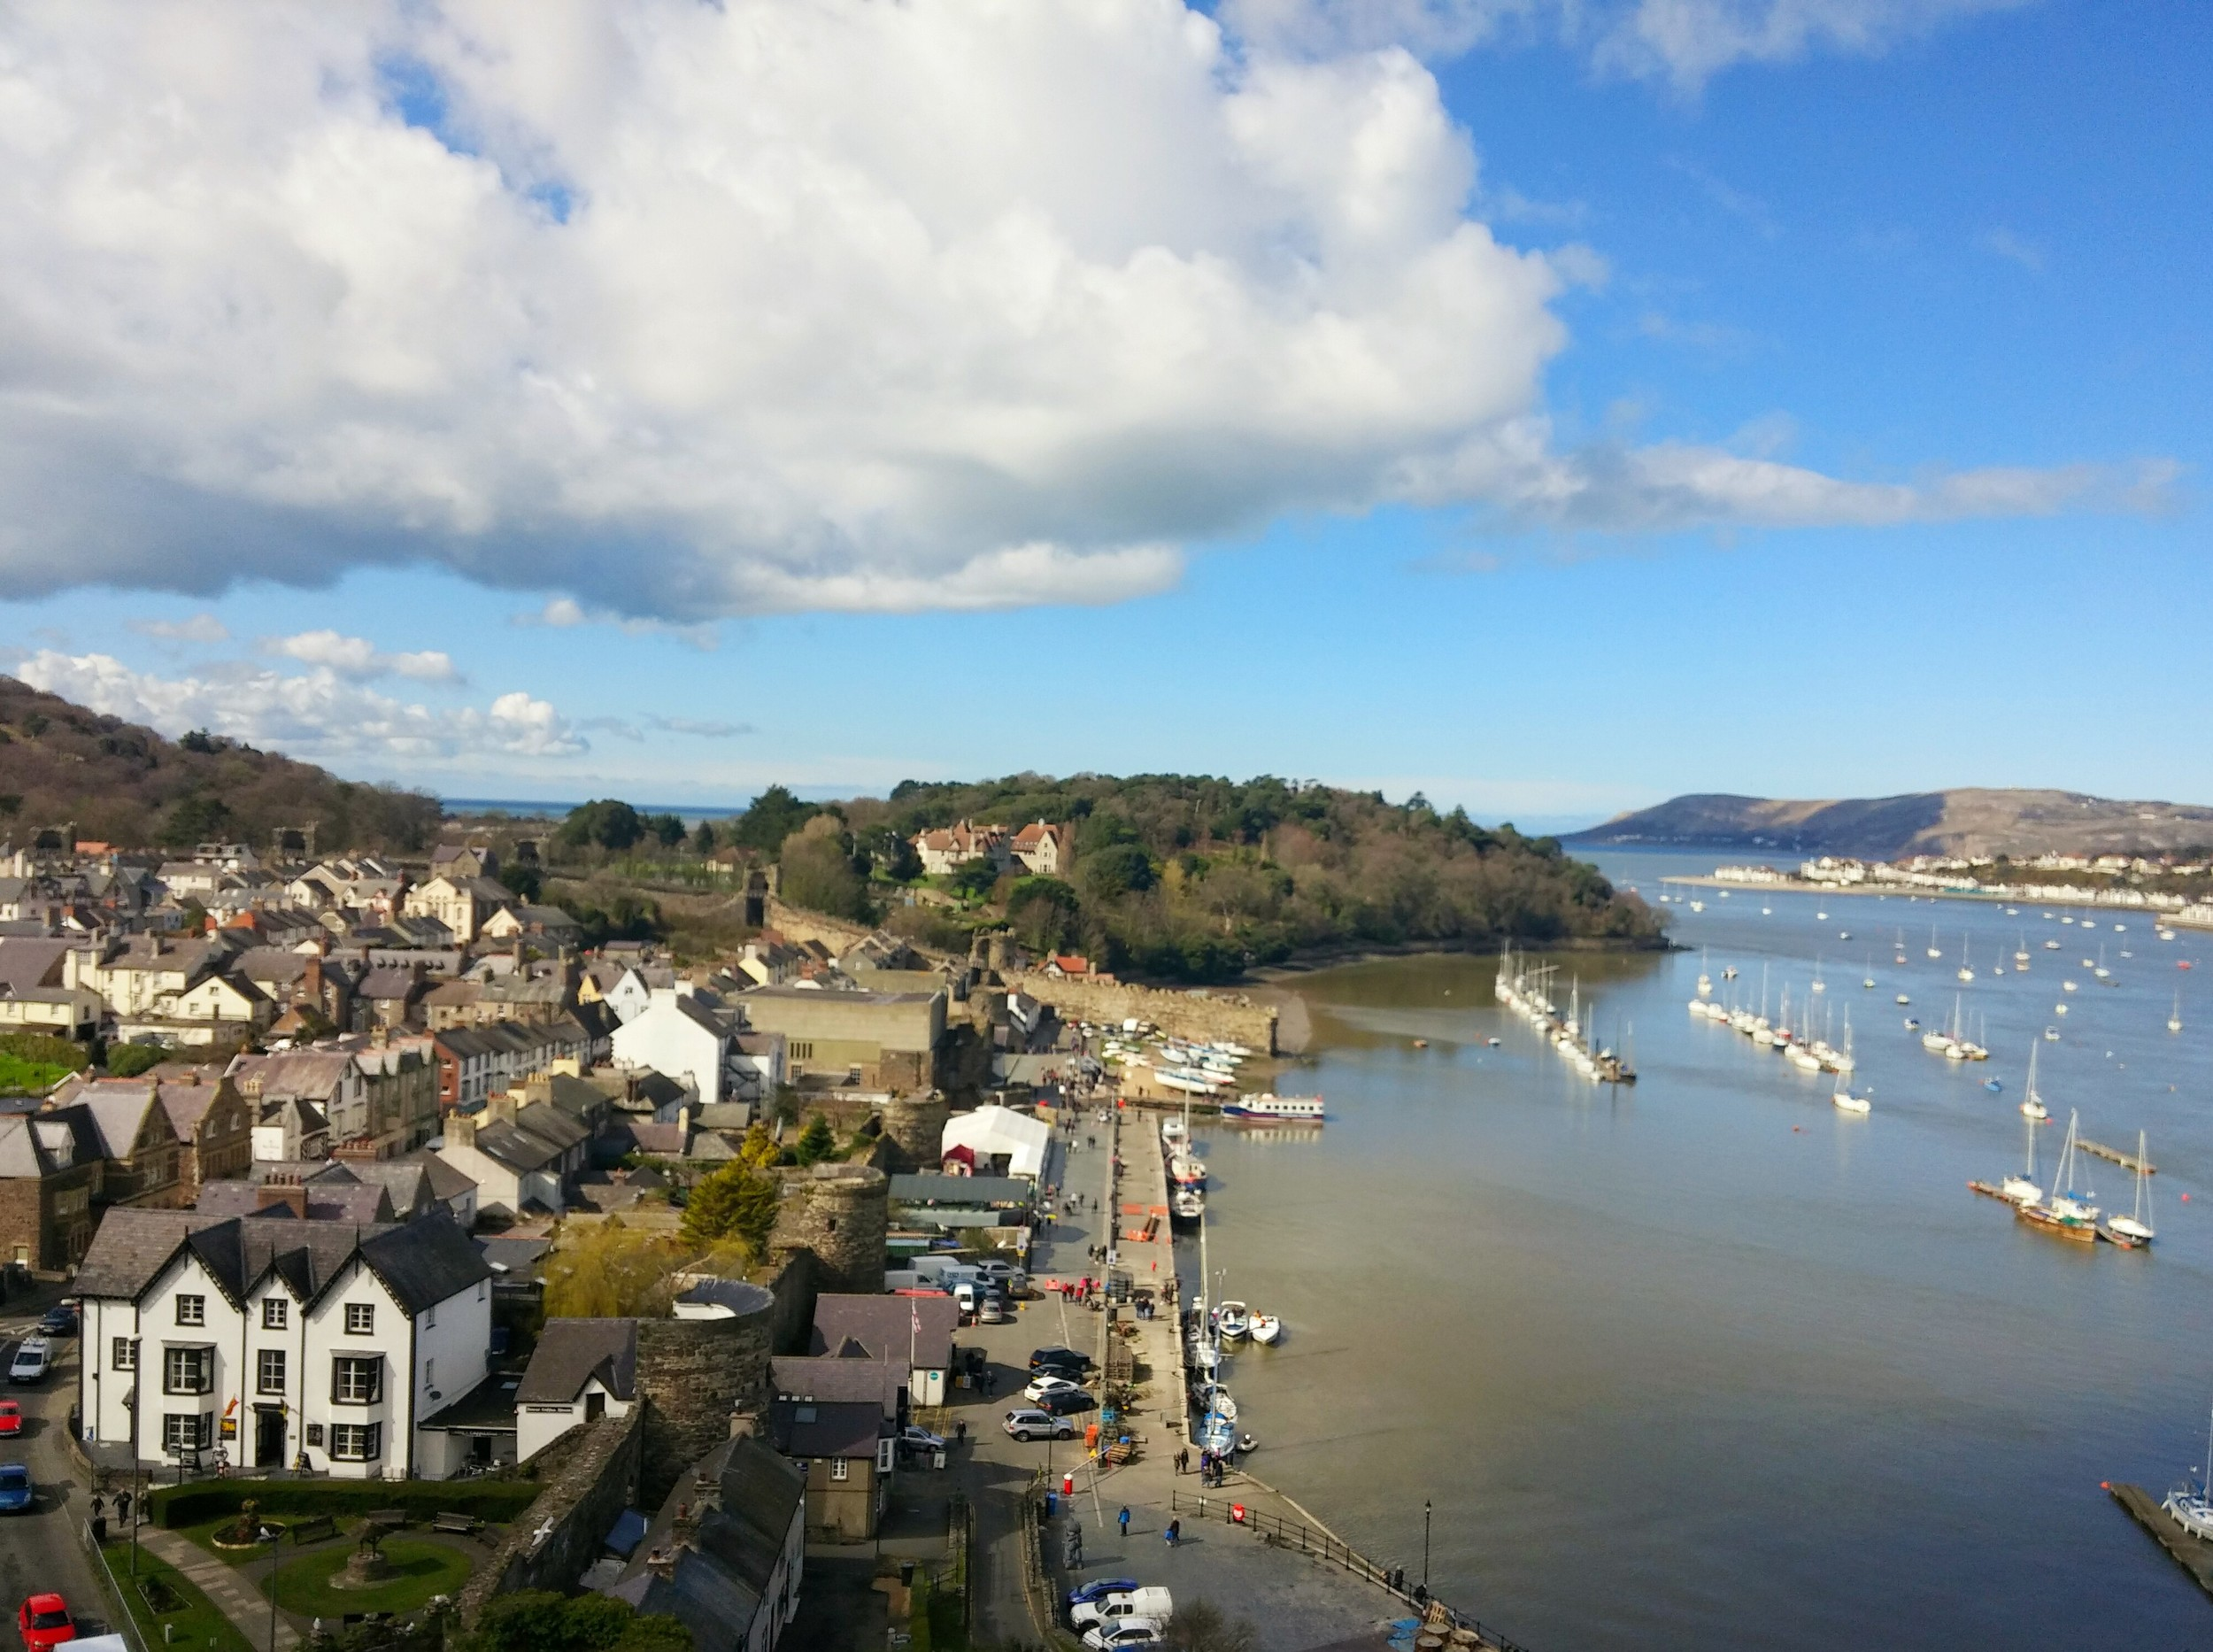 The view of the bay from the towers of Conwy Castle